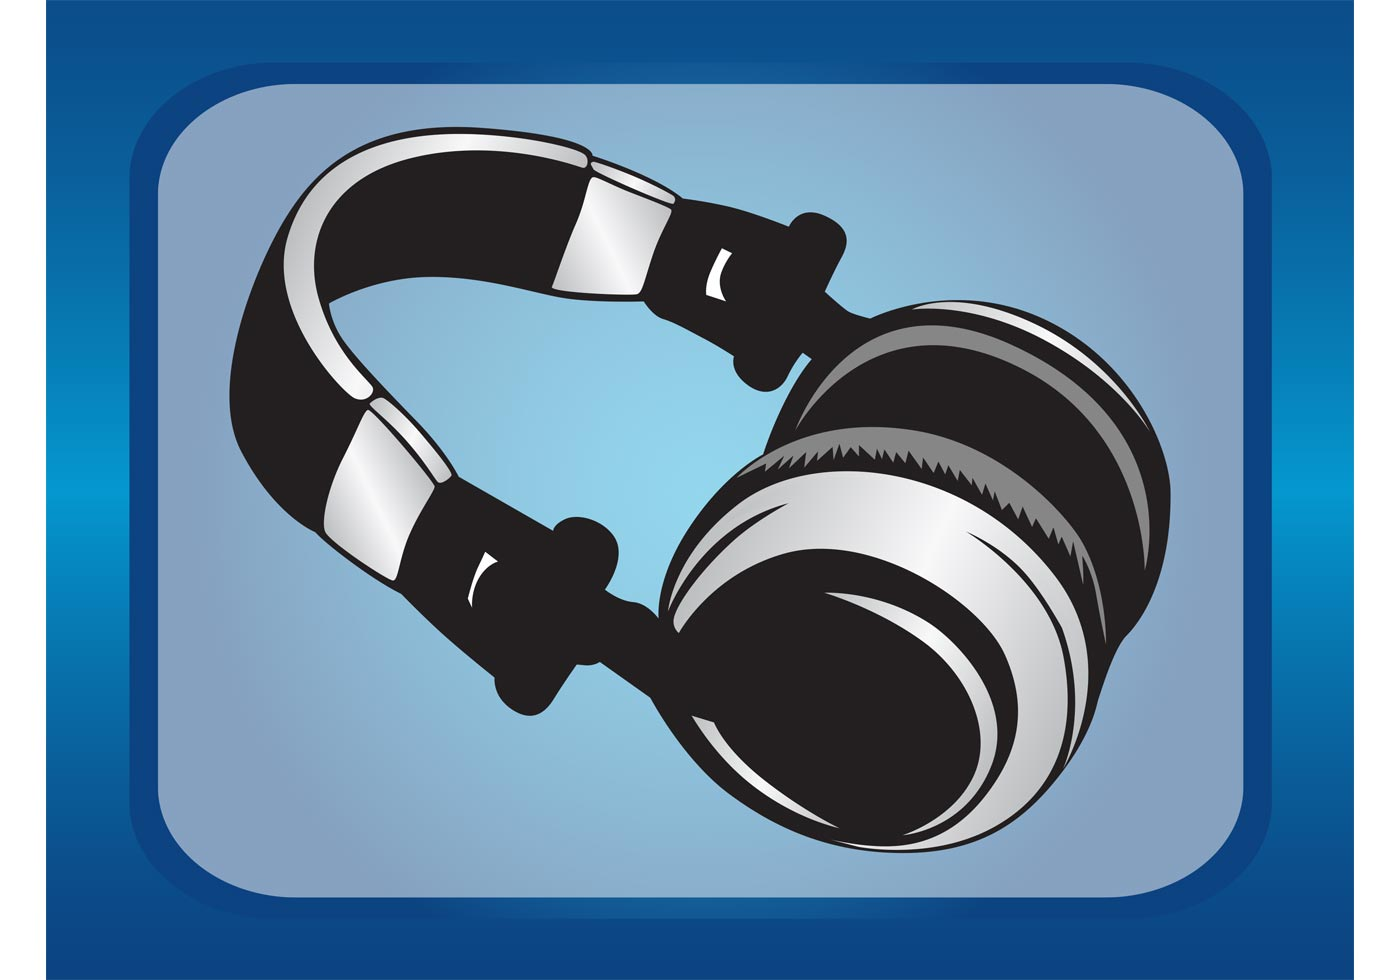 Wireless Headphones Download Free Vector Art Stock